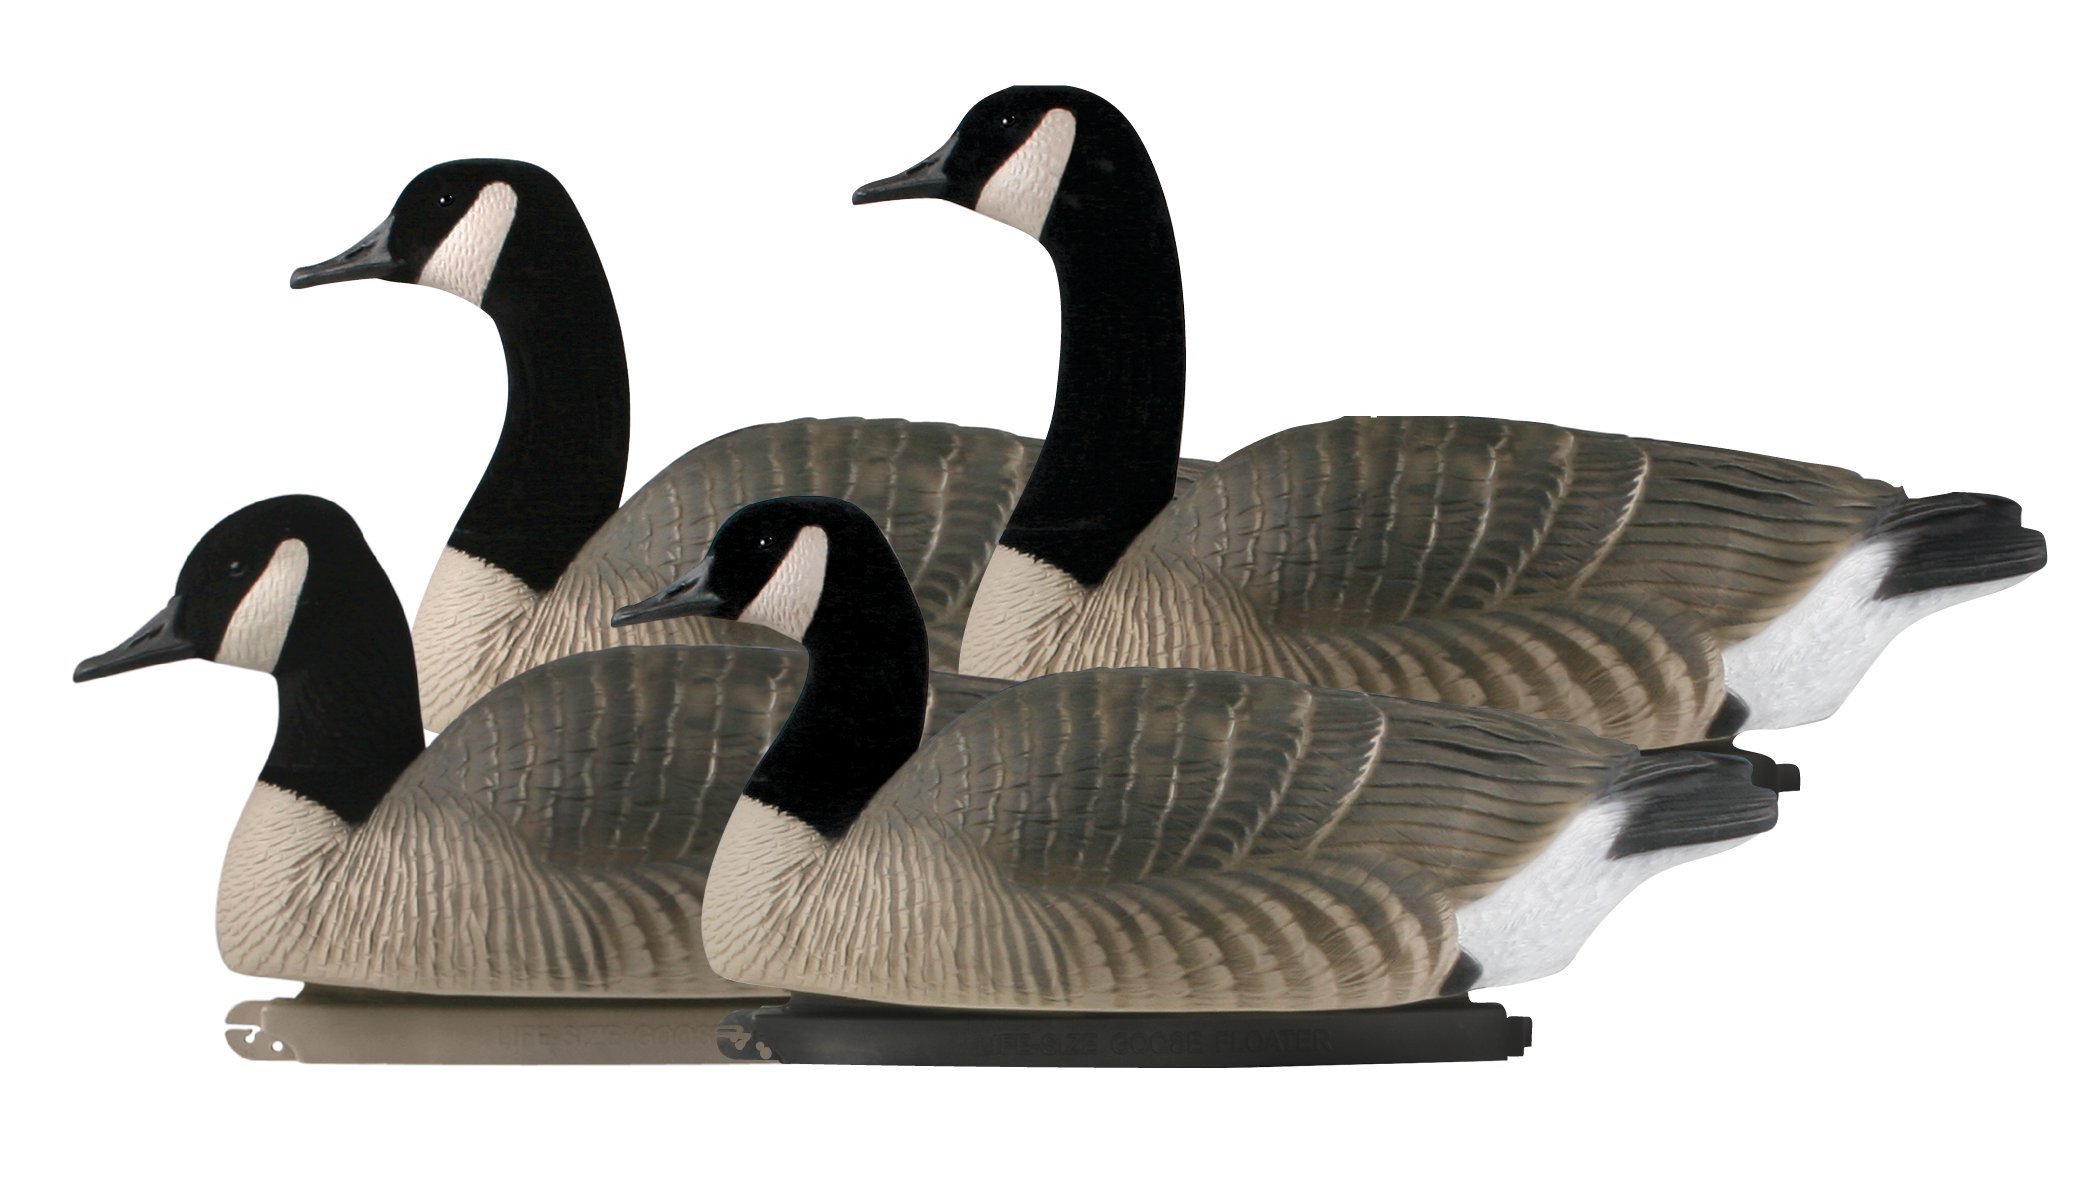 Avery Greenhead Gear, Pro-Grade Canada Goose Floater Decoys, 71085 - 4 Pack